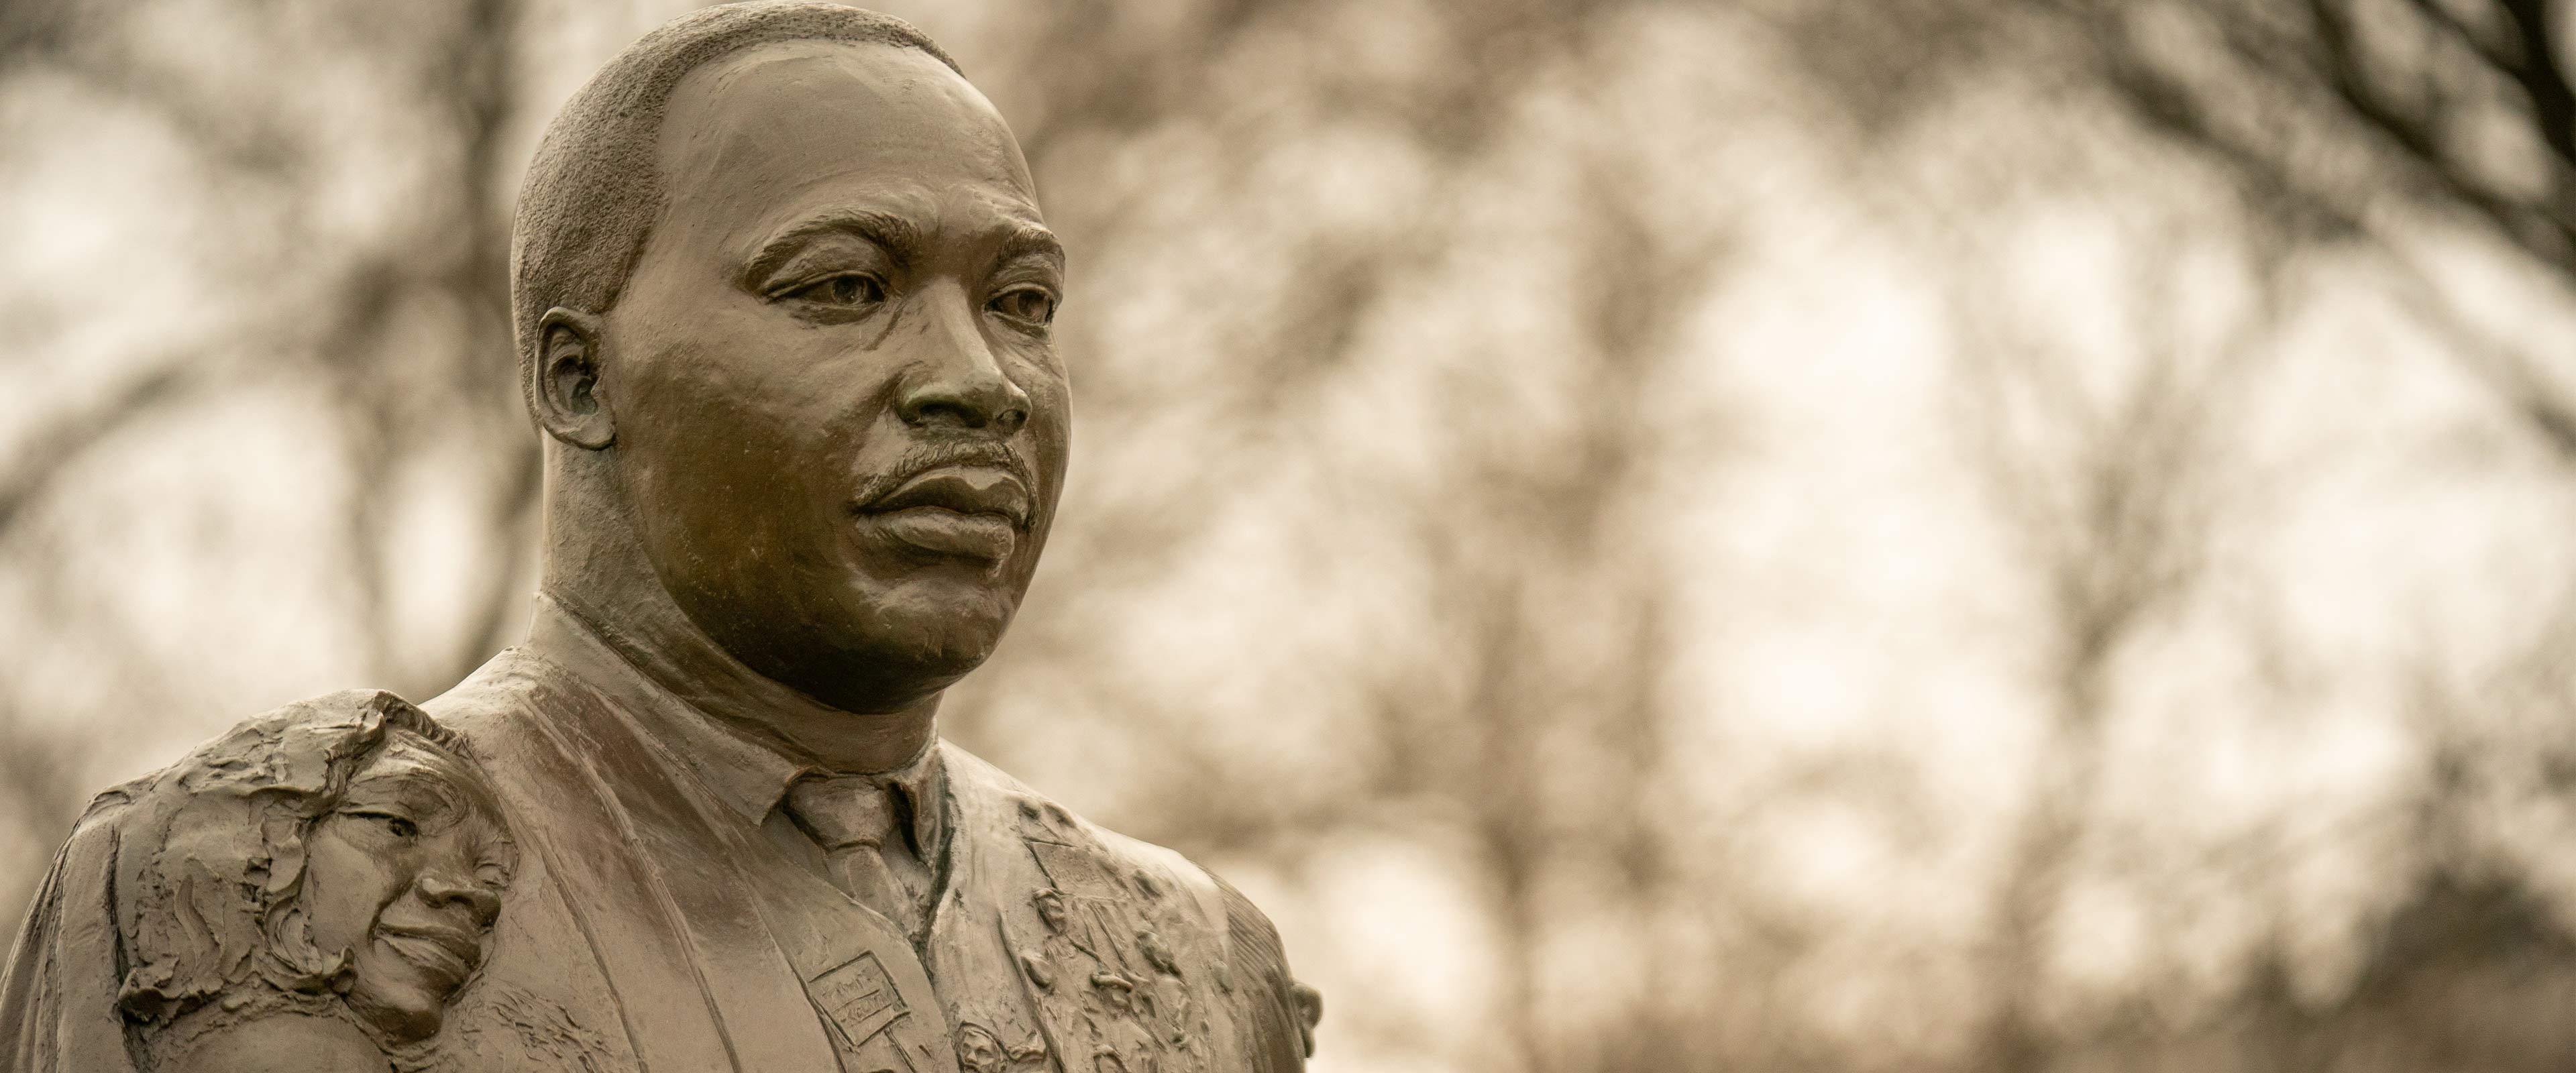 The Martin Luther King Jr. statue in downtown Kalamazoo.